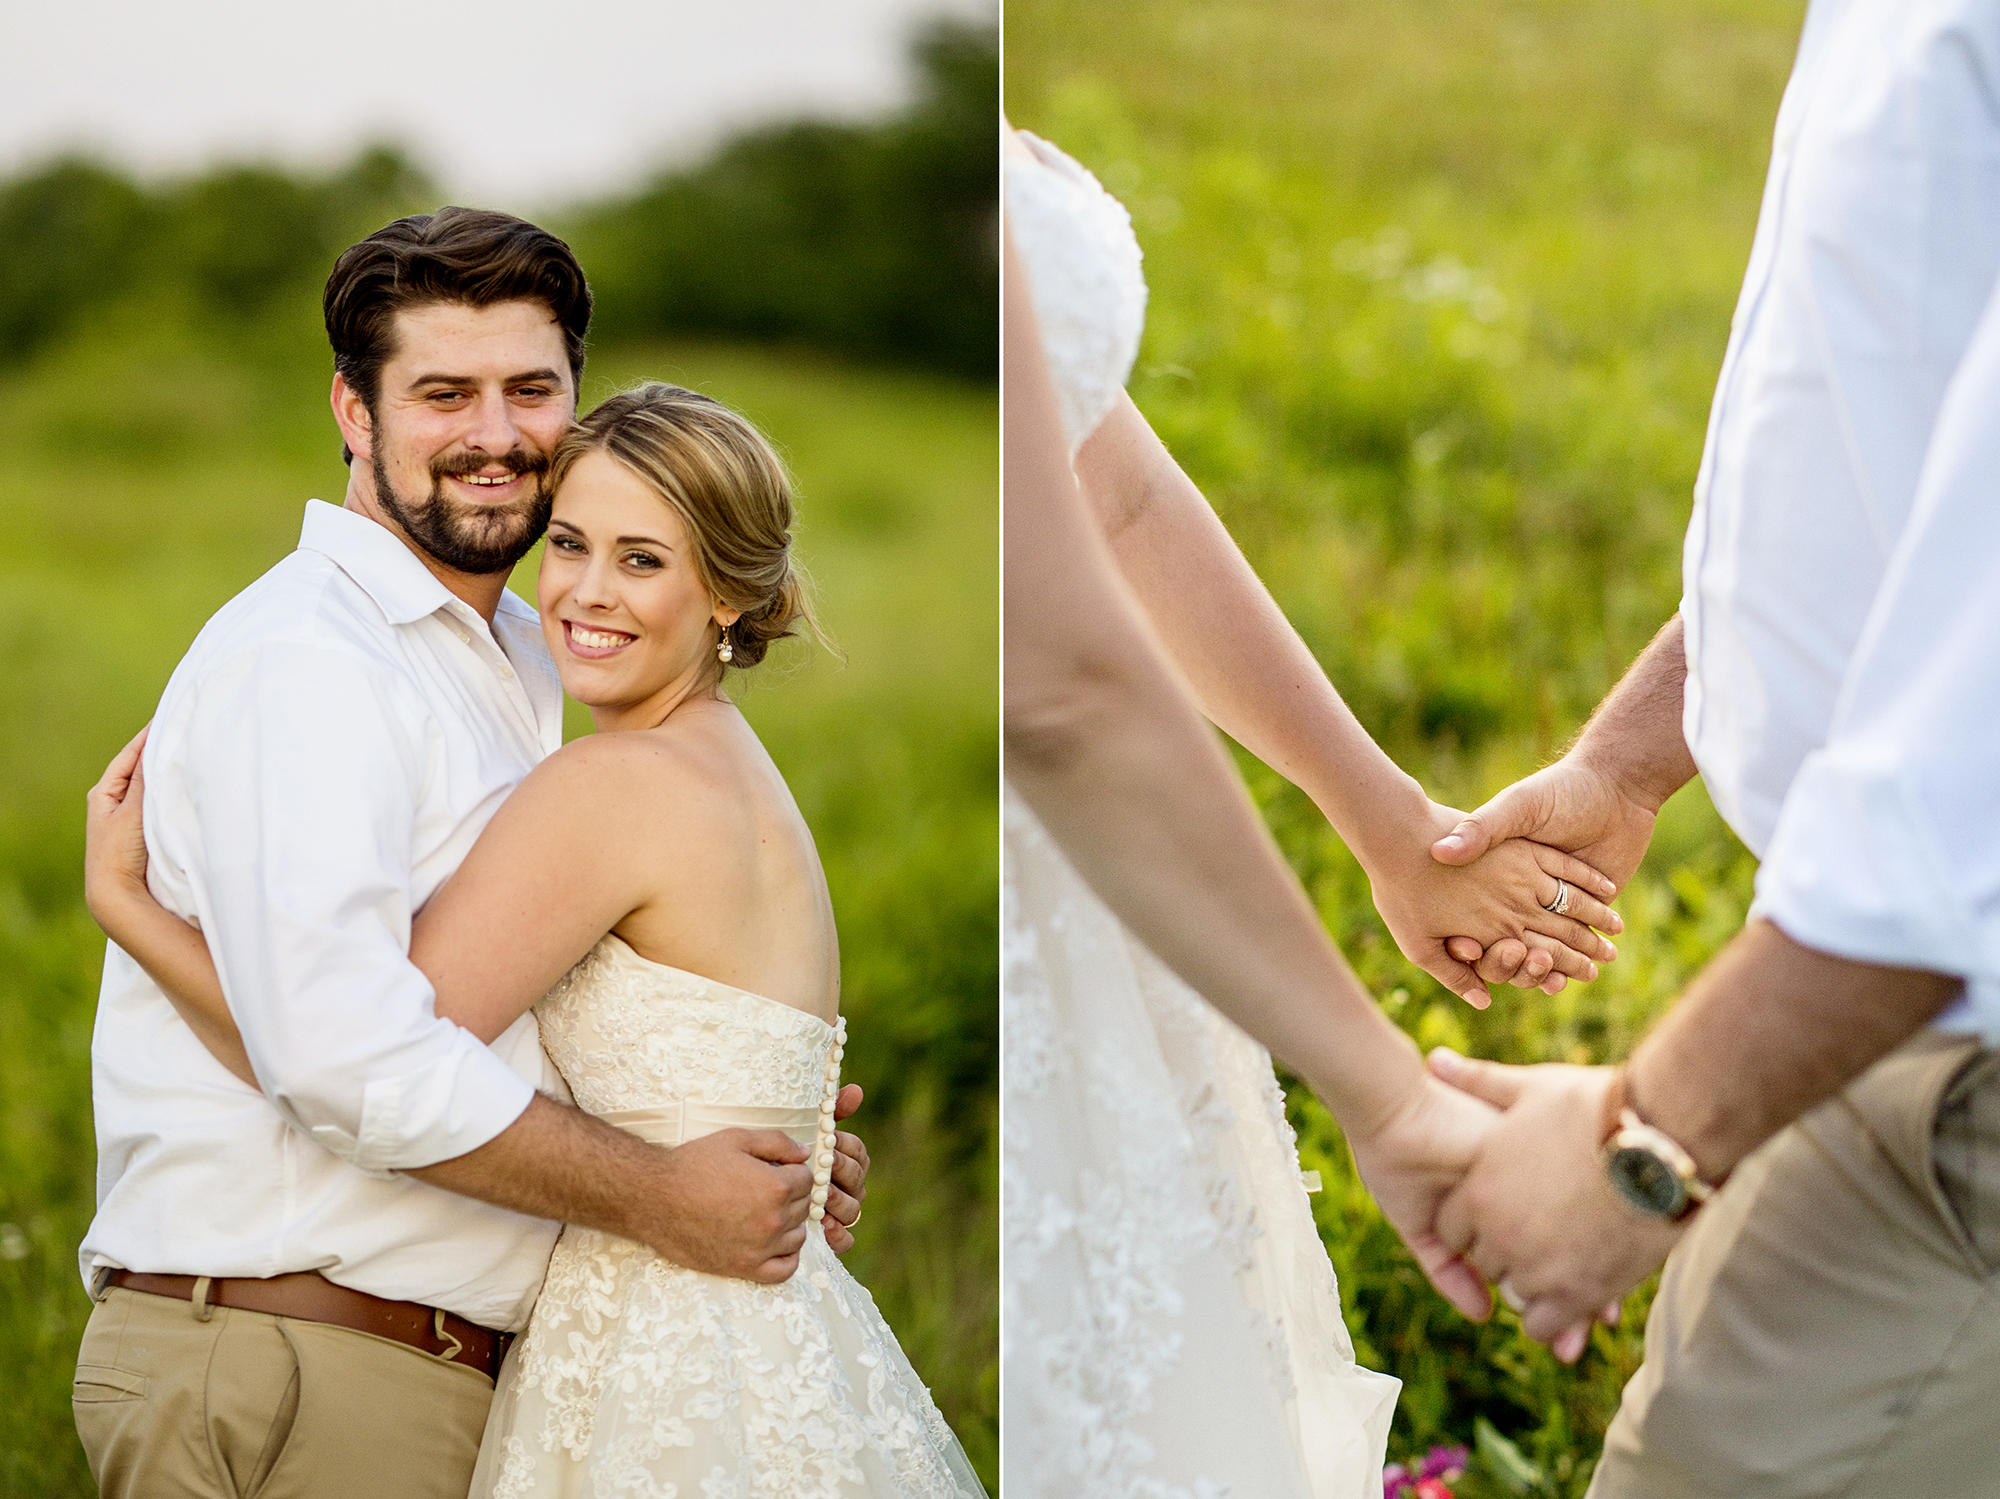 Seriously_Sabrina_Photography_Lexington_Kentucky_Romantic_Shakertown_Wedding_Portraits_Mazzetti38.jpg